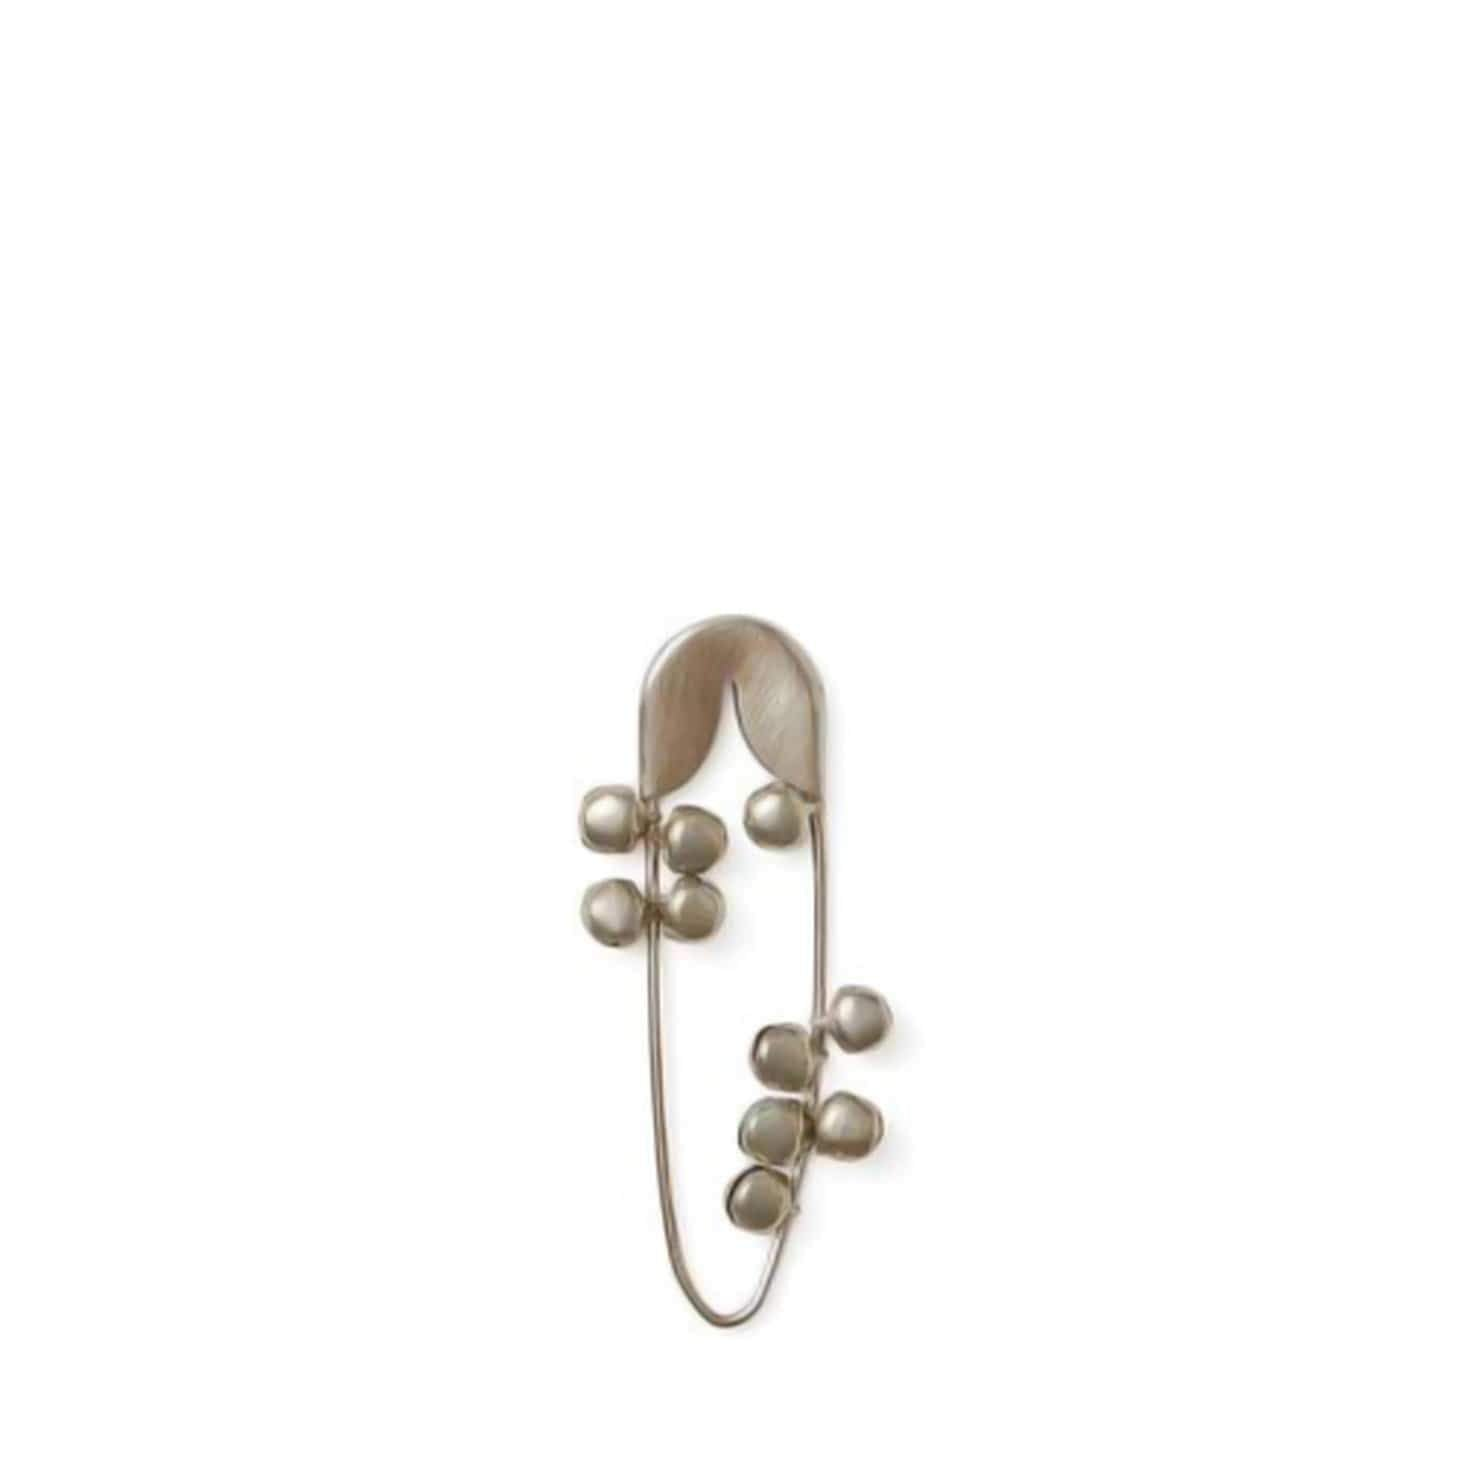 Fog Linen Work 'Bell' Safety Pin - Small